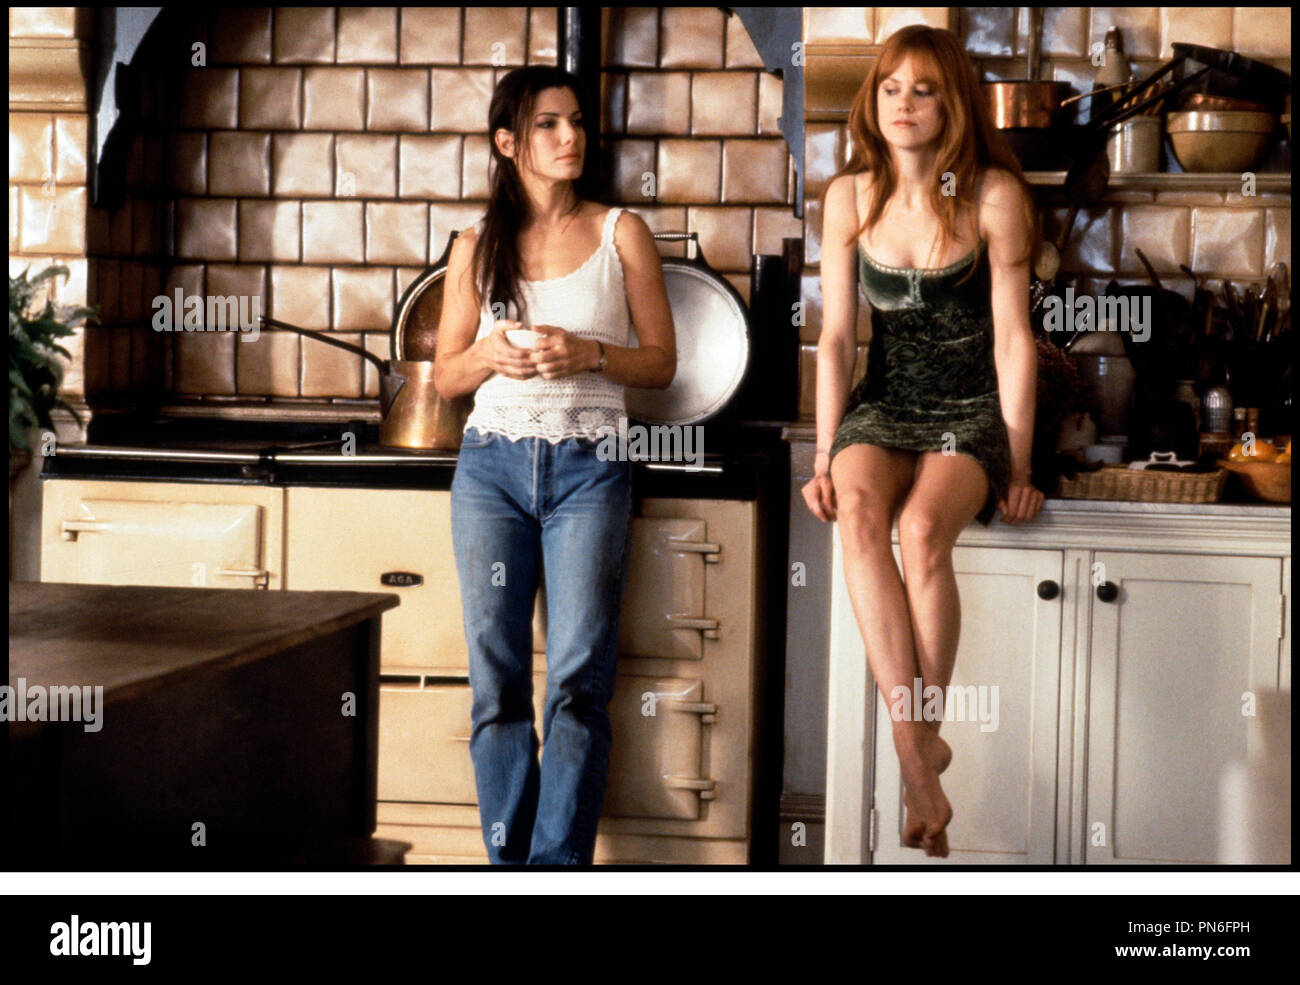 Prod DB © Village Roadshow-Warner Bros / DR LES ENSORCELEUSES (PRACTICAL MAGIC) de Griffin Dunne 1998 USA avec Sandra Bullock et Nicole Kidman cuisine d'apres le roman de Alice Hoffman - Stock Image